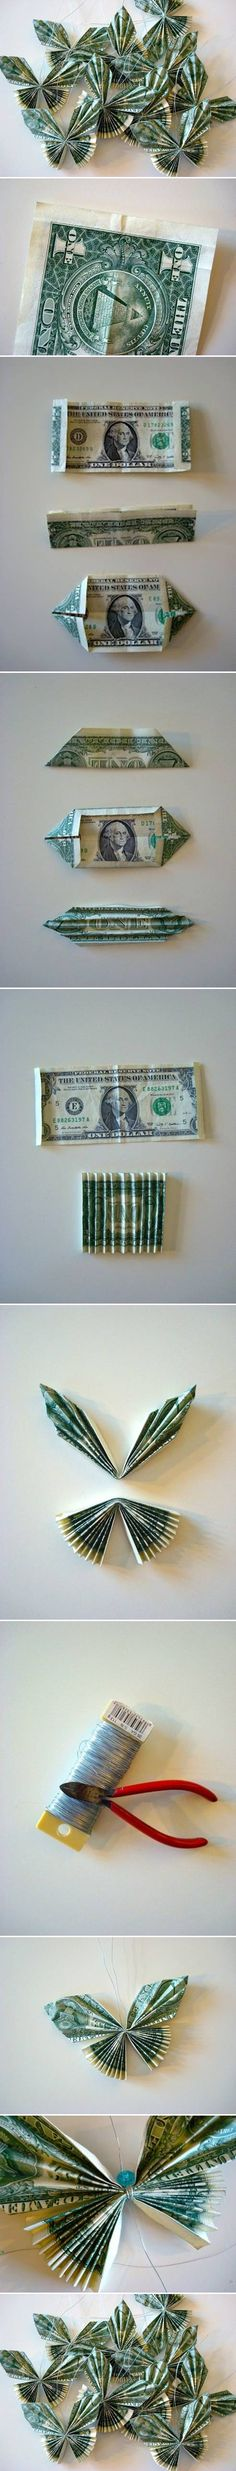 Dollar Bill Butterfly - #diy